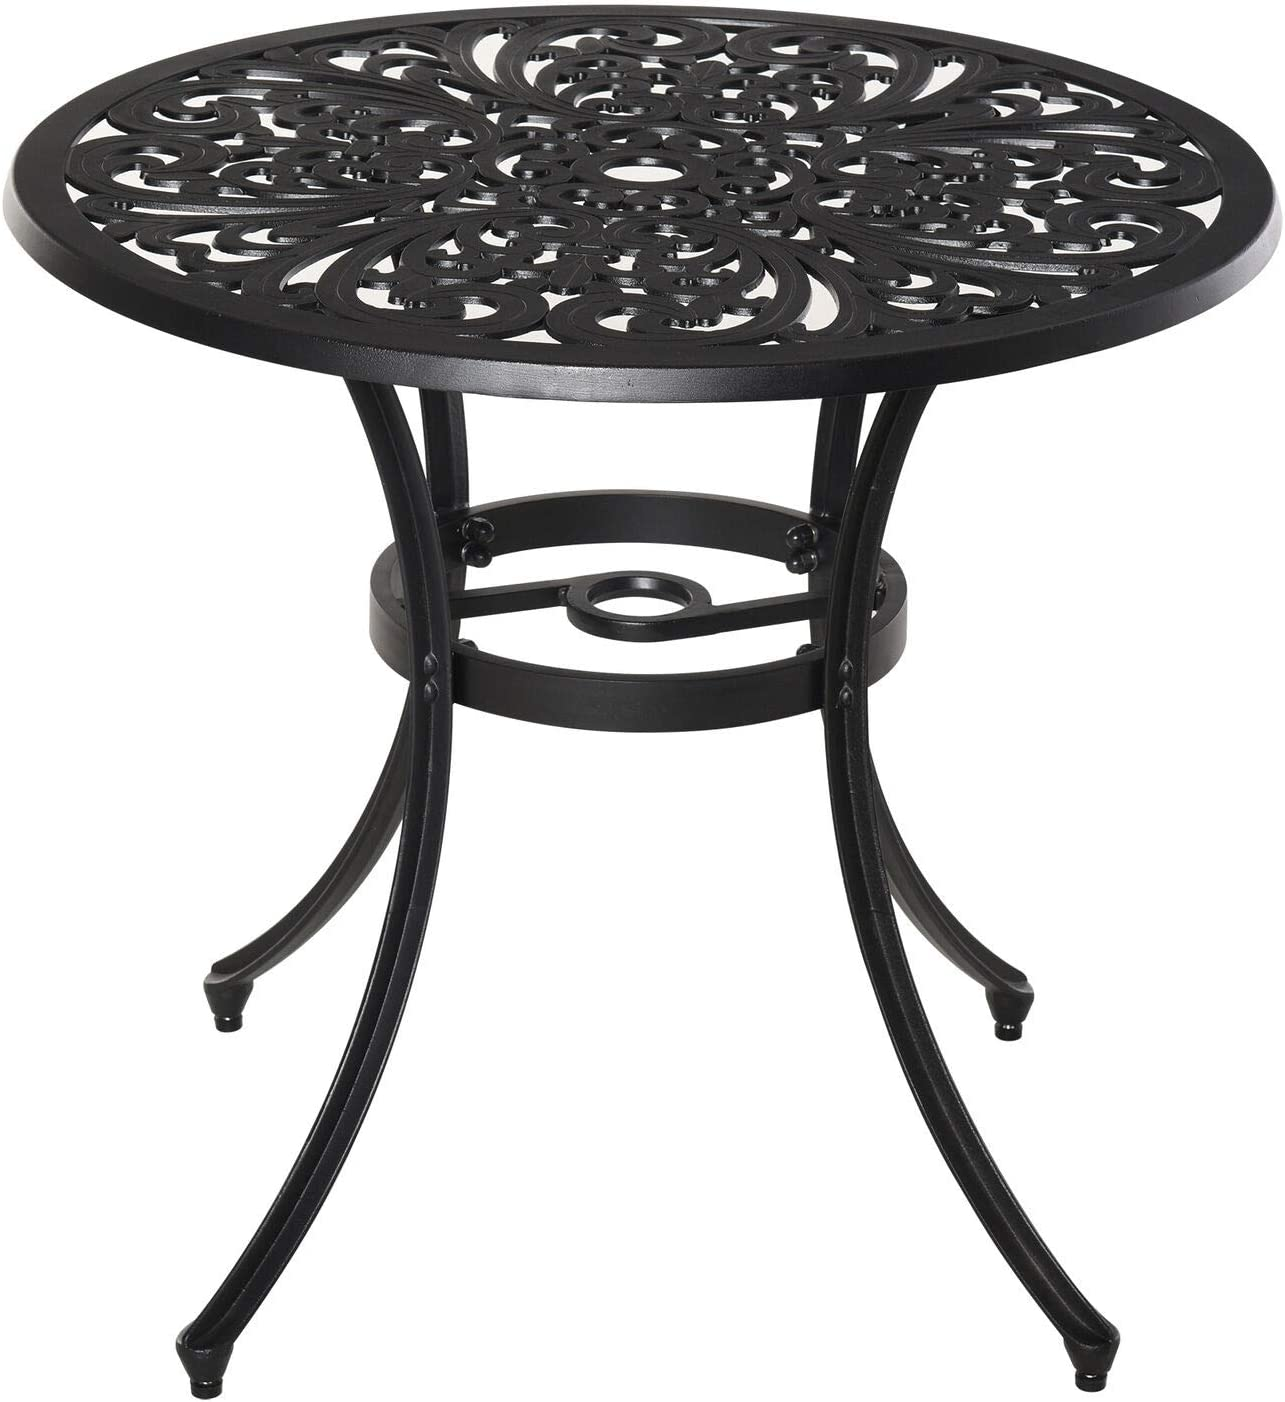 Floral Vintage Bistro Accent OFFicial Table Built-in Hole Umbrella with S Mail order